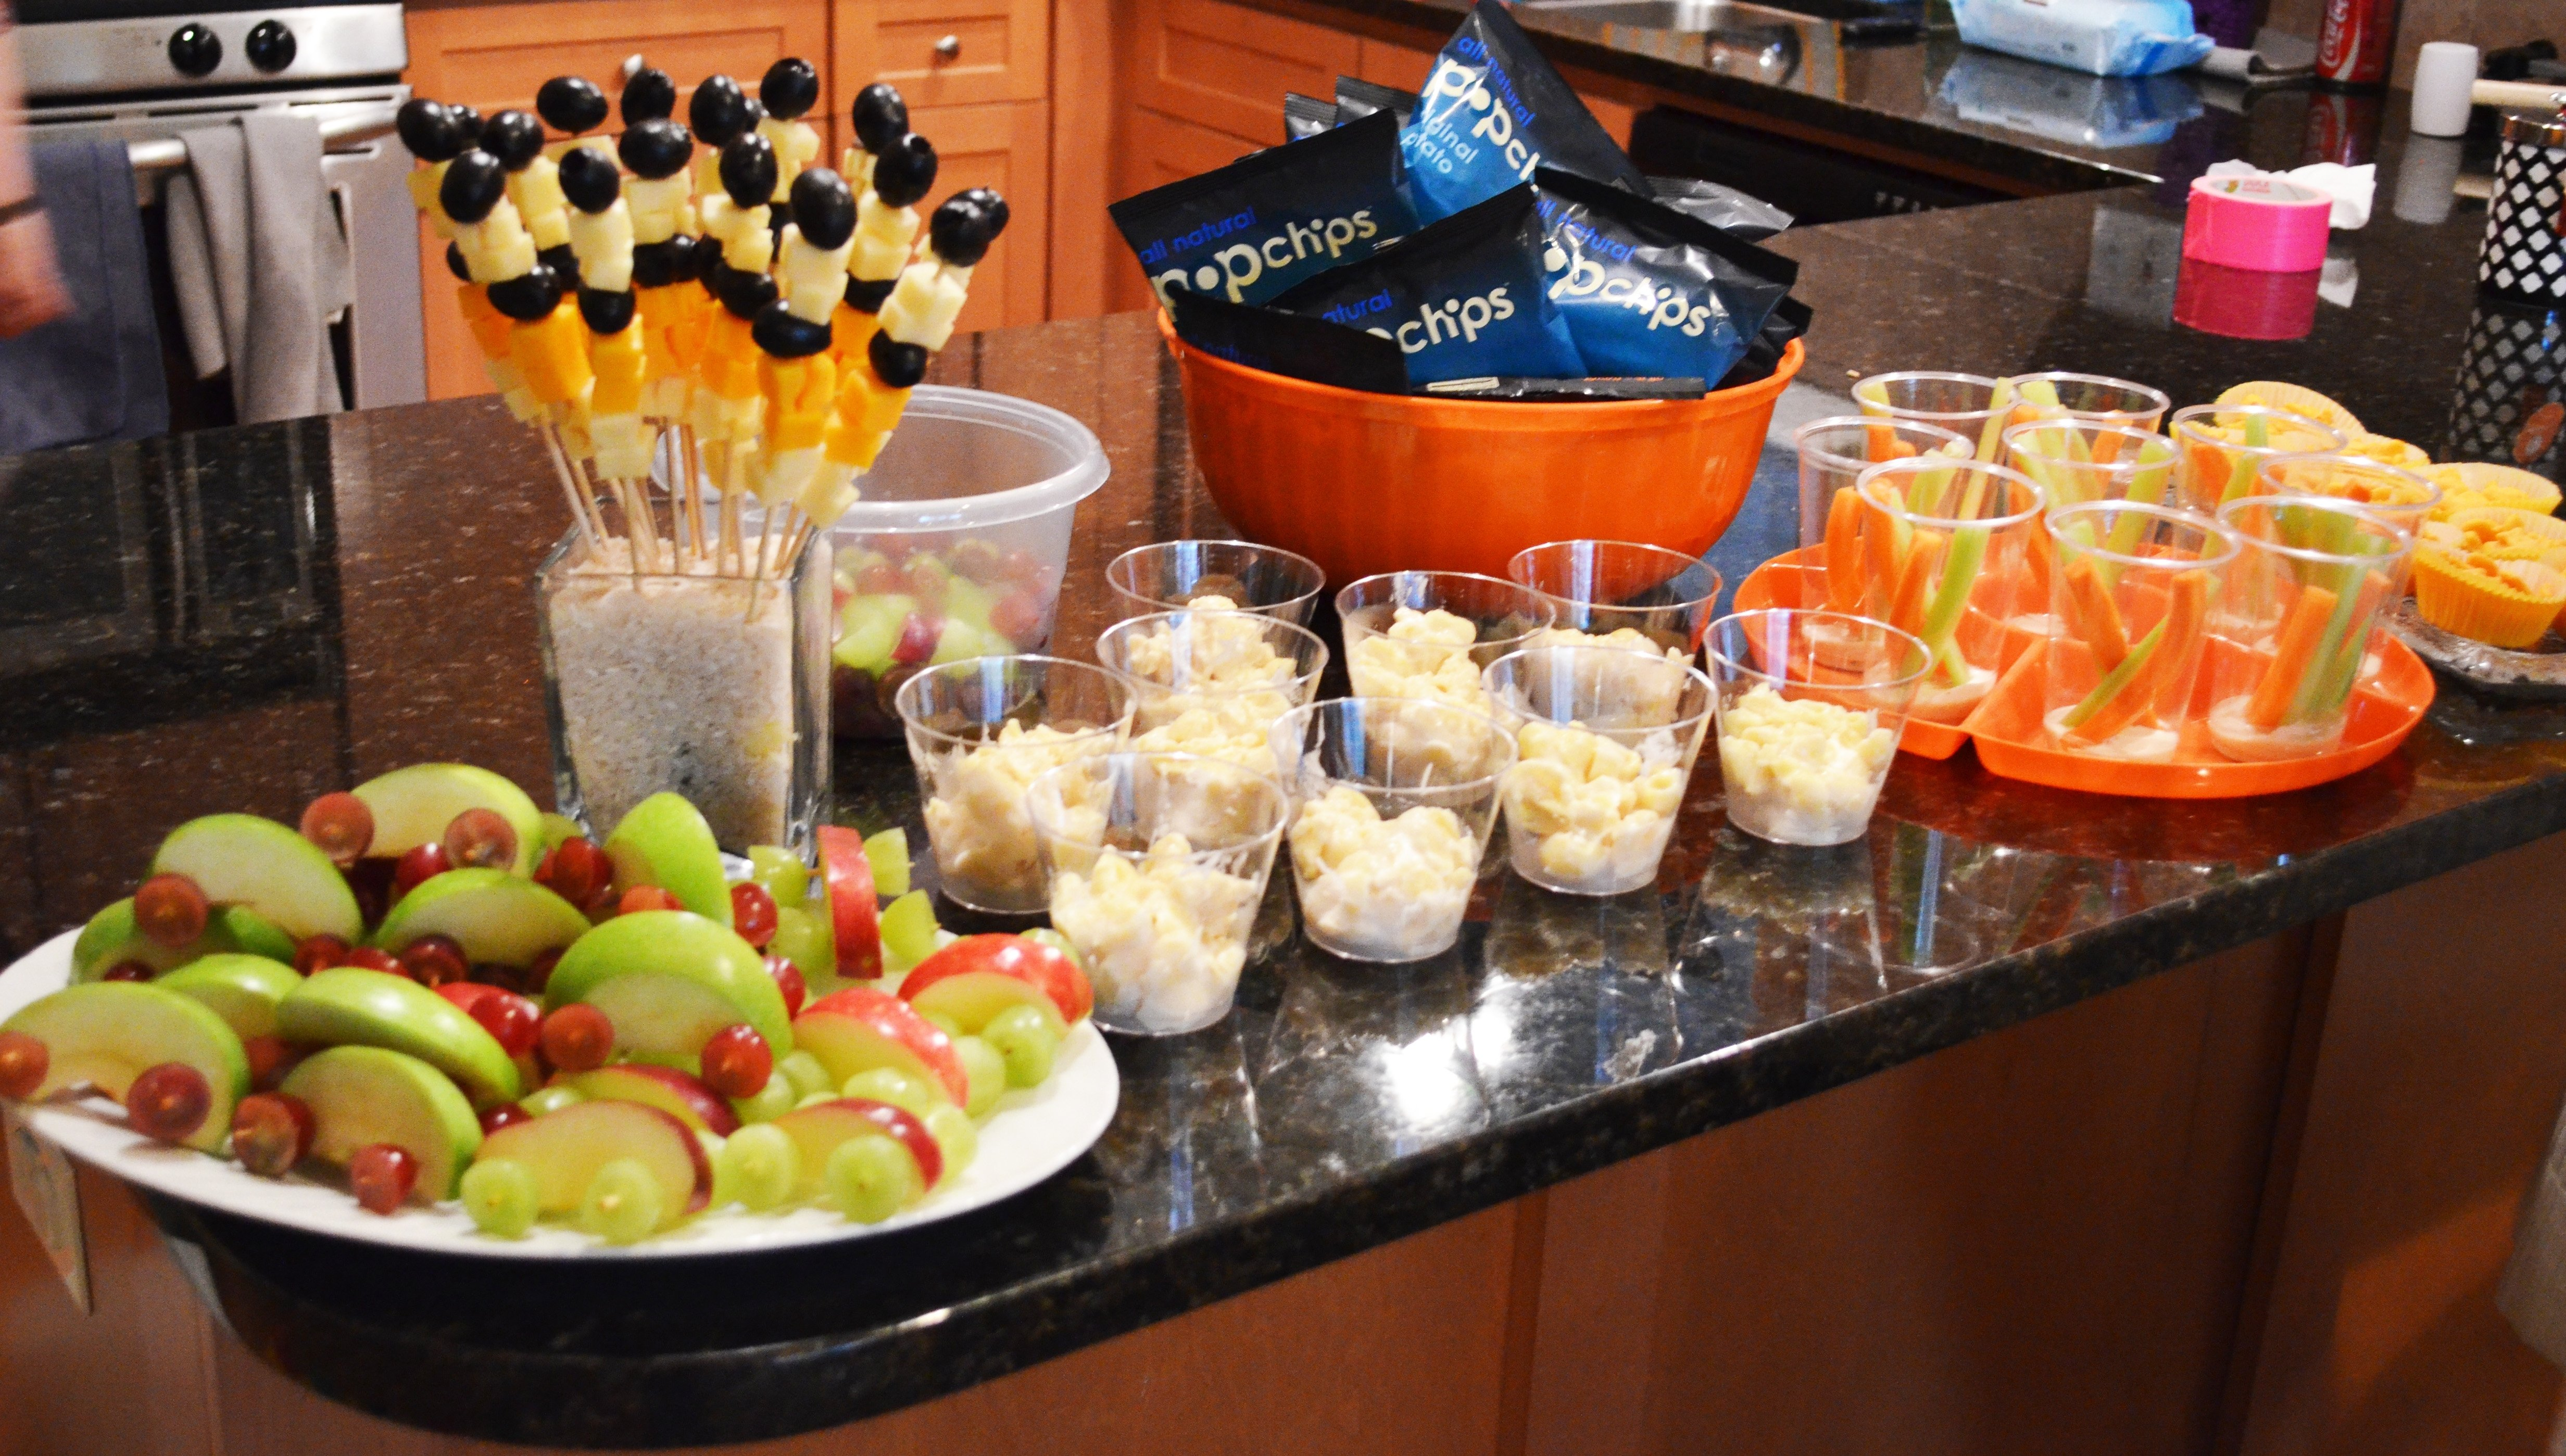 10 Cute Ideas For Birthday Party Food a how to construction truck birthday party birthdays 1 2021